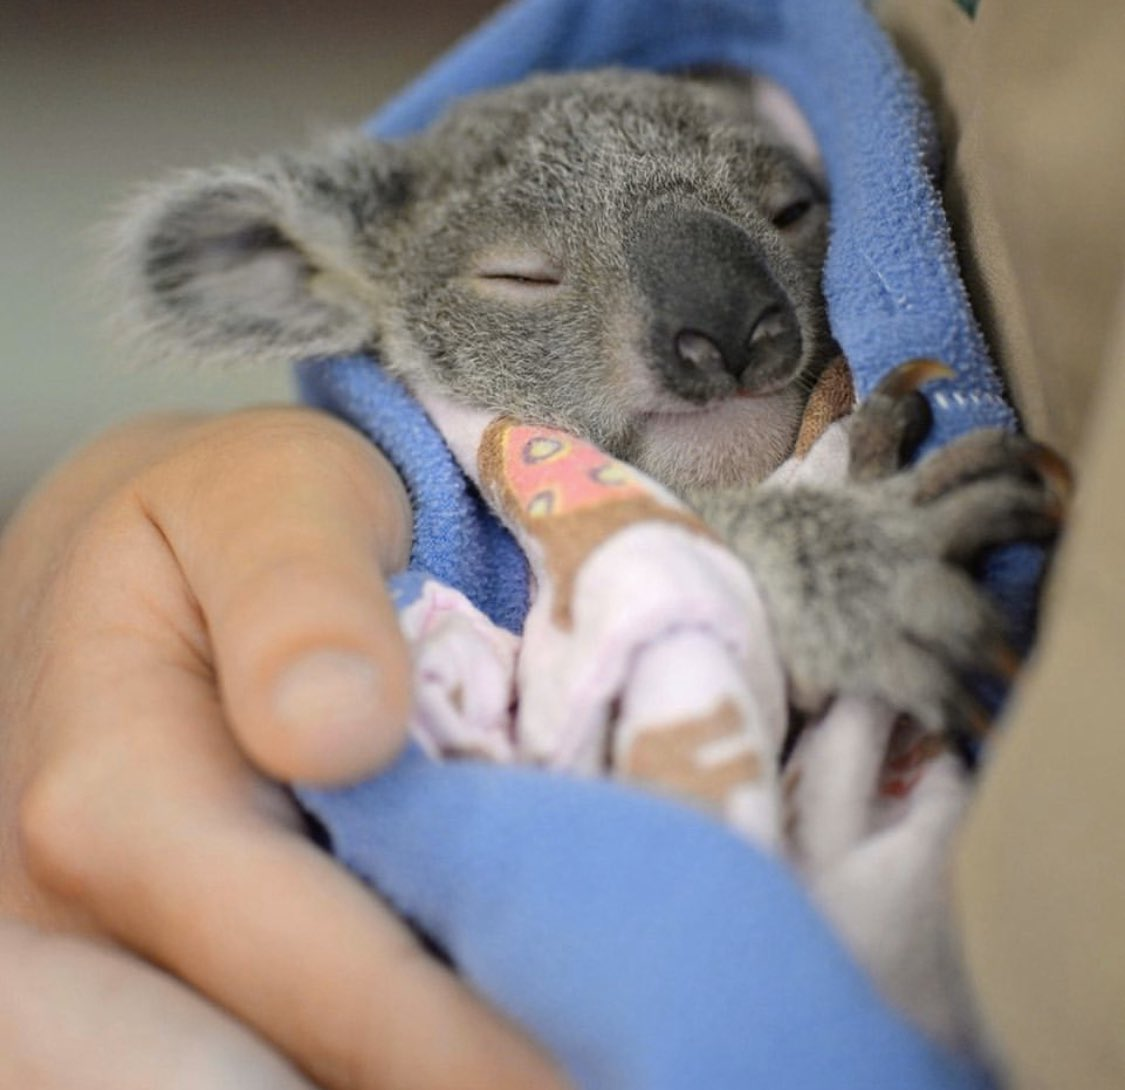 With native wildlife under more threat than ever before, our @AustraliaZoo Wildlife Hospital is increasingly busy rehabilitating sick, injured & orphaned animals to release back to the wild. We have a dedicated team working 24/7 for thousands of patients that are admitted  <br>http://pic.twitter.com/t5r85mFOci